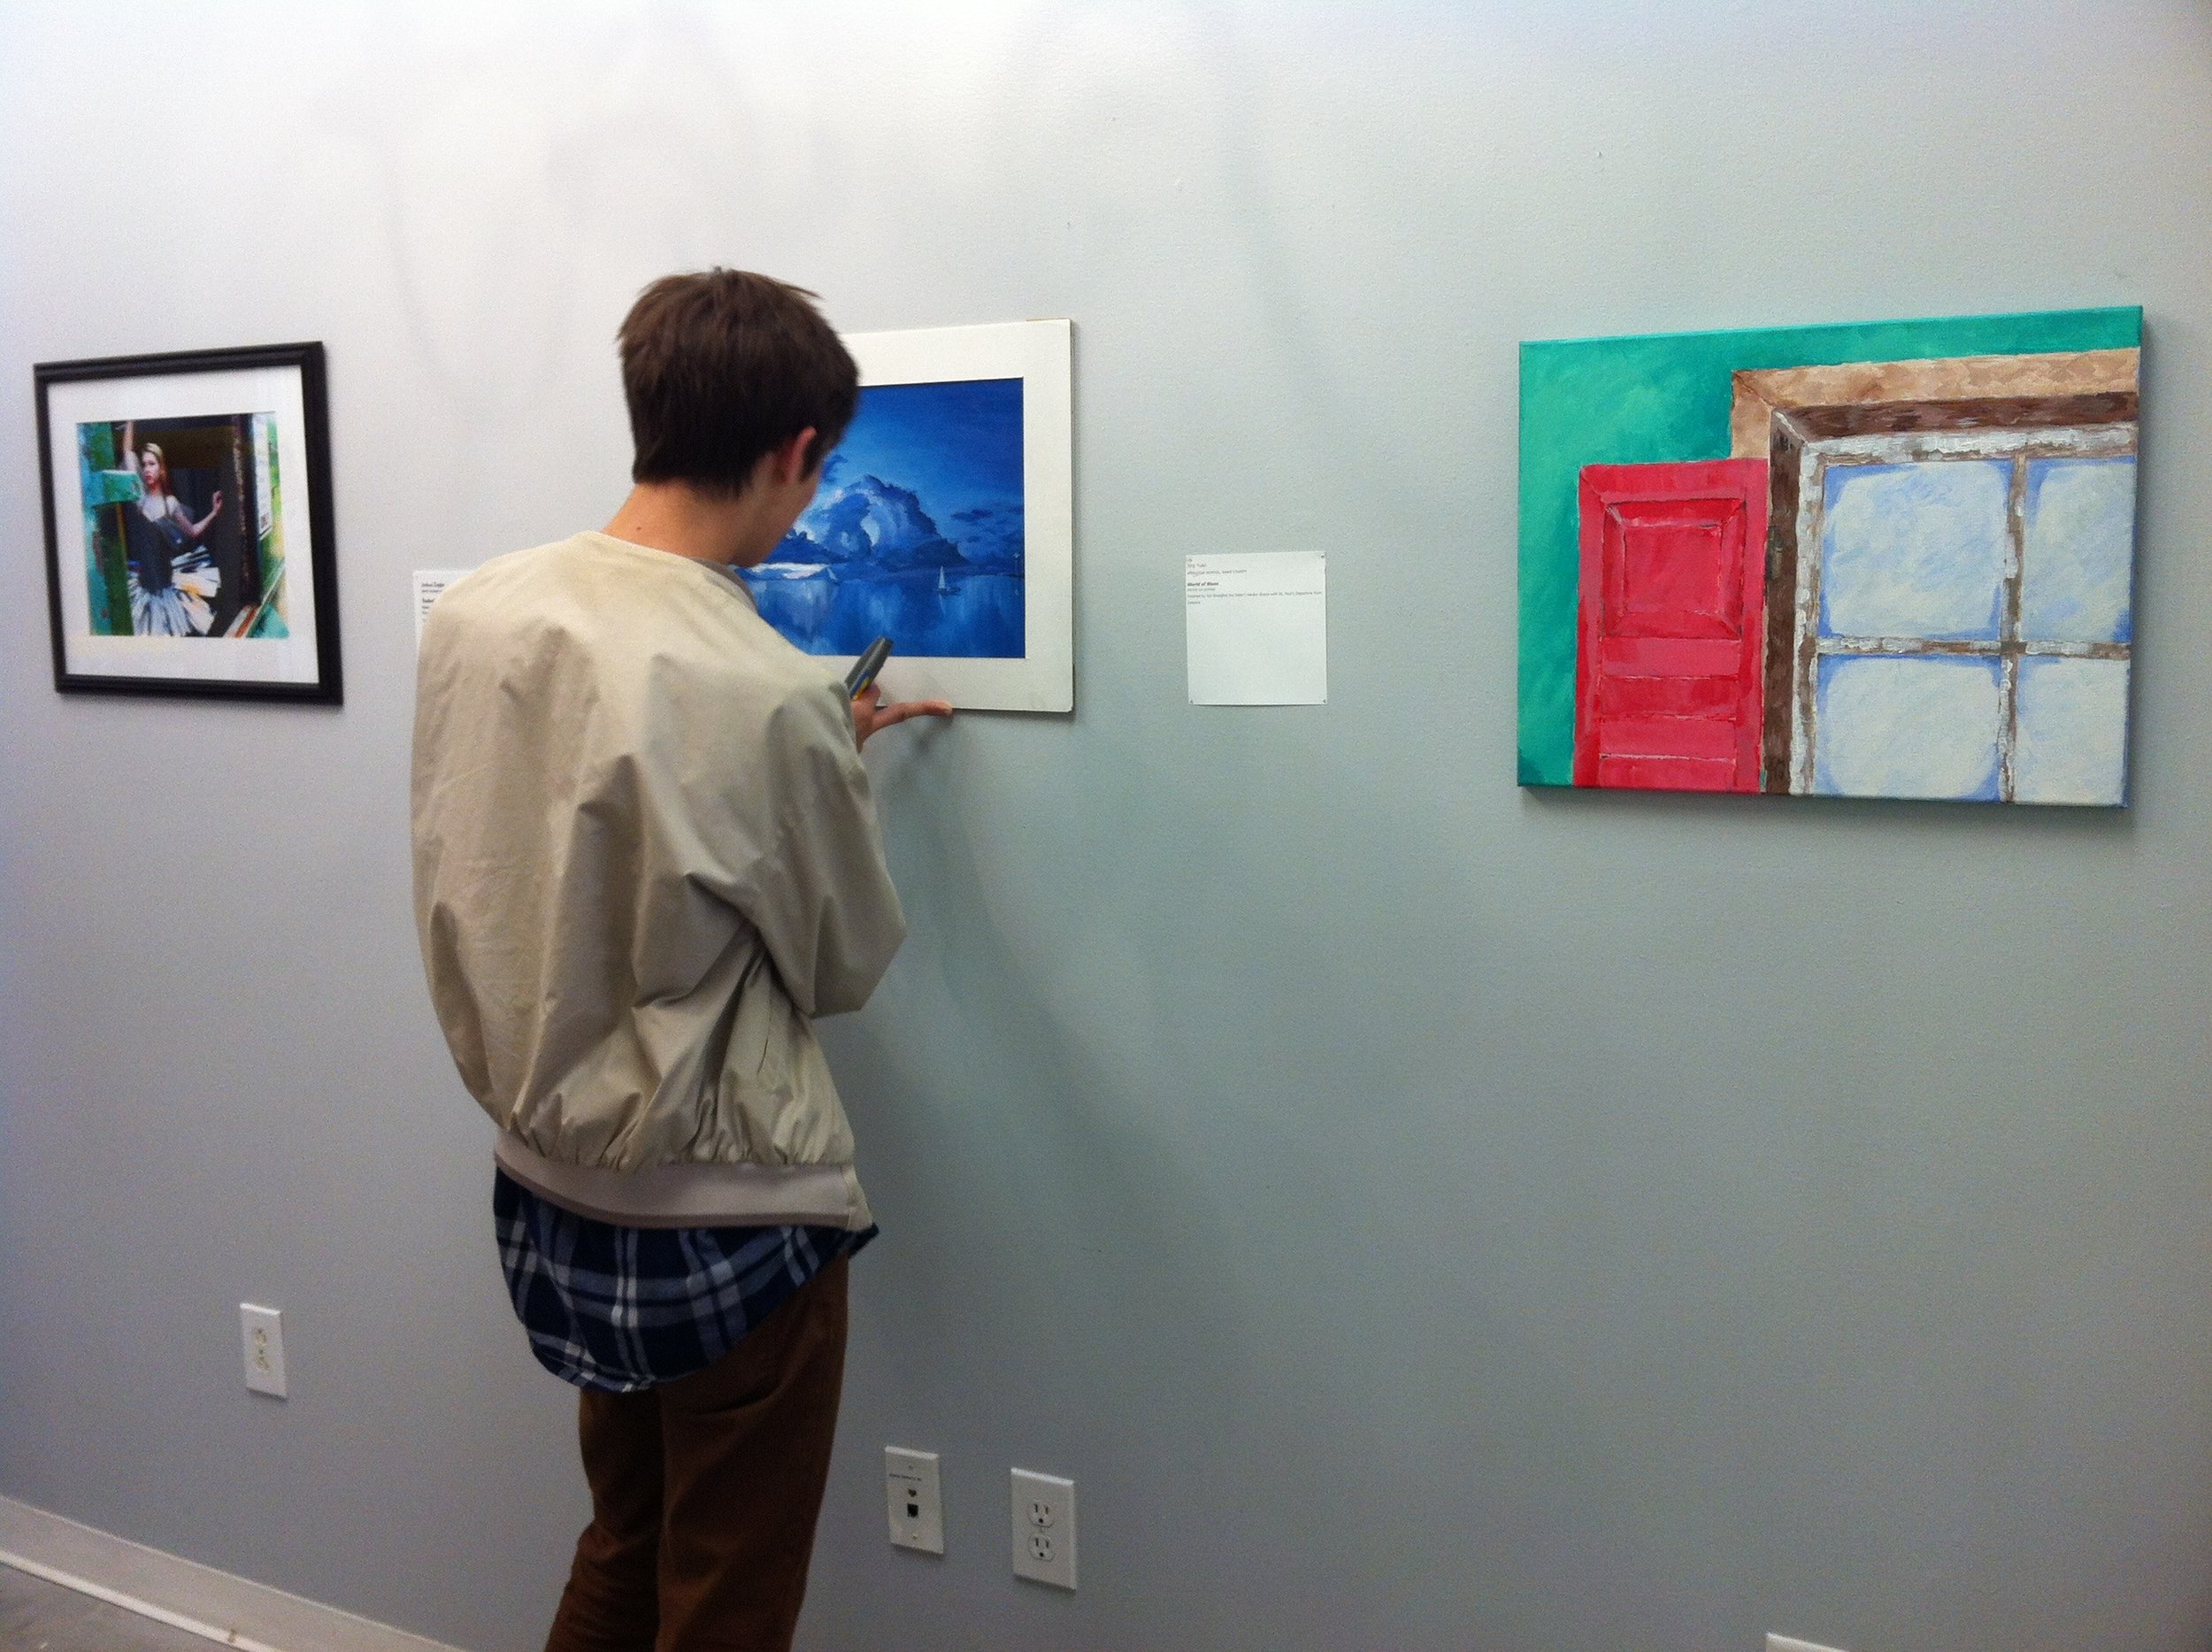 A Teen Arts Council member helps install the high school exhibition at a local art gallery.